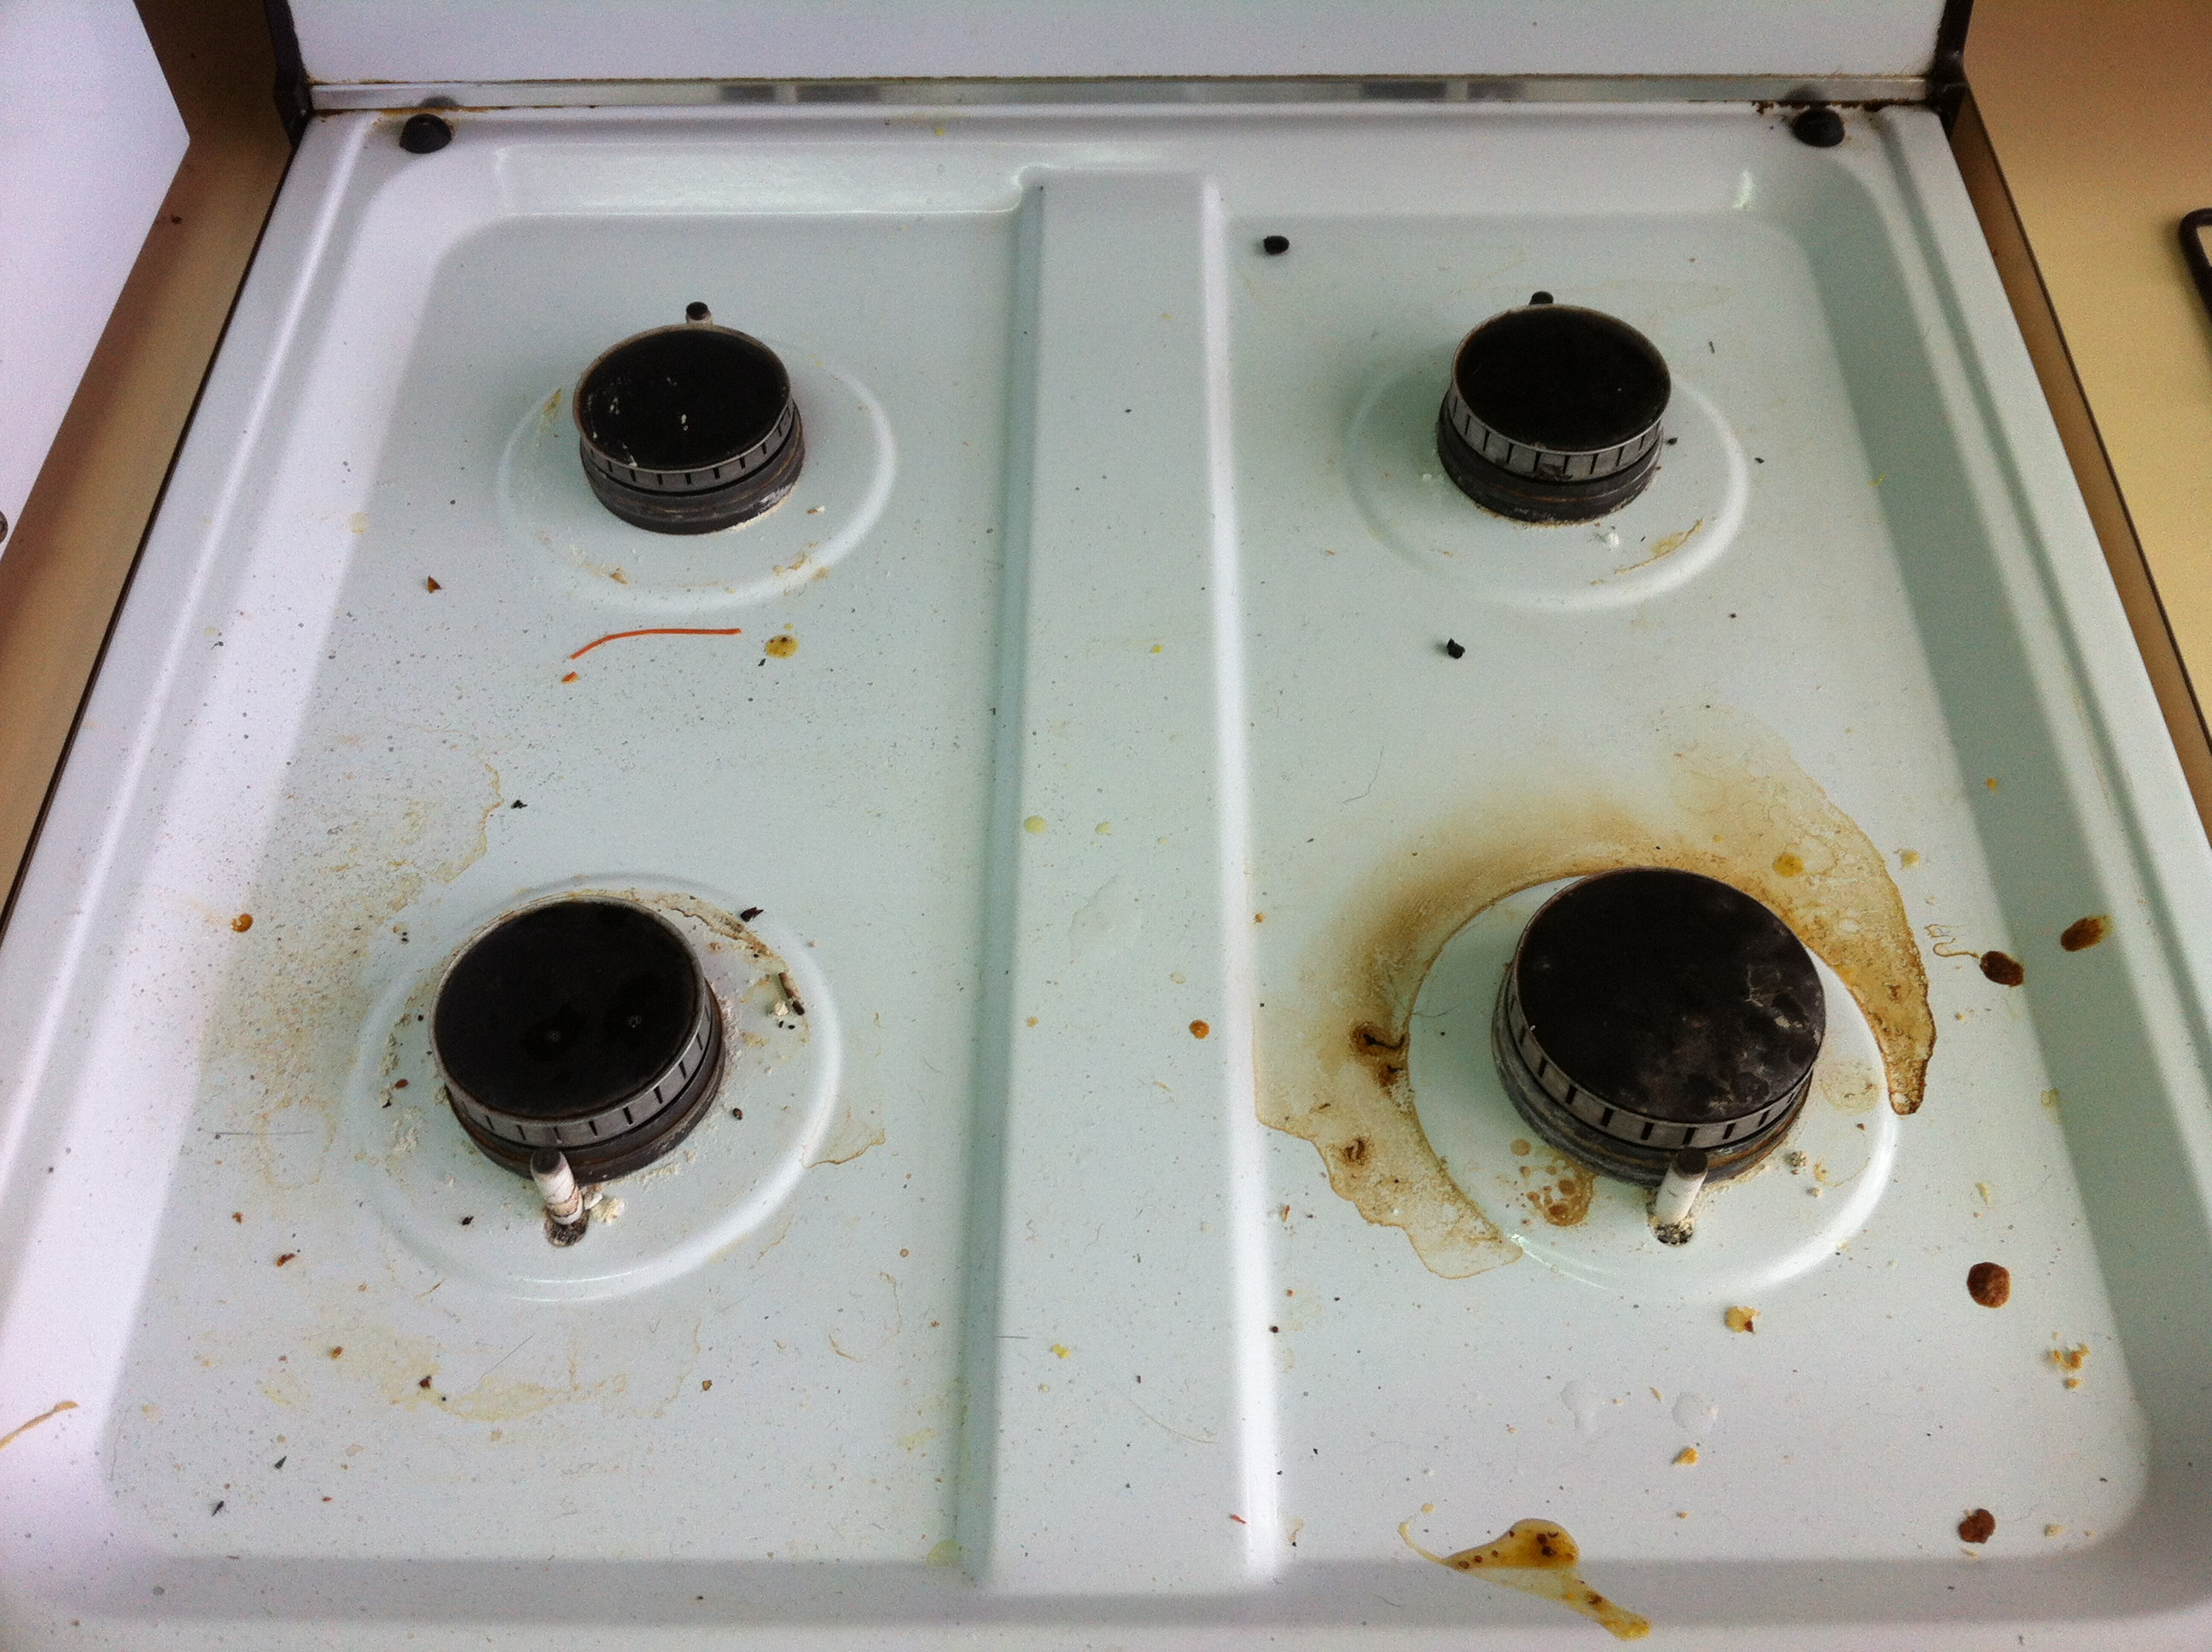 301 moved permanently How to clean top of oven